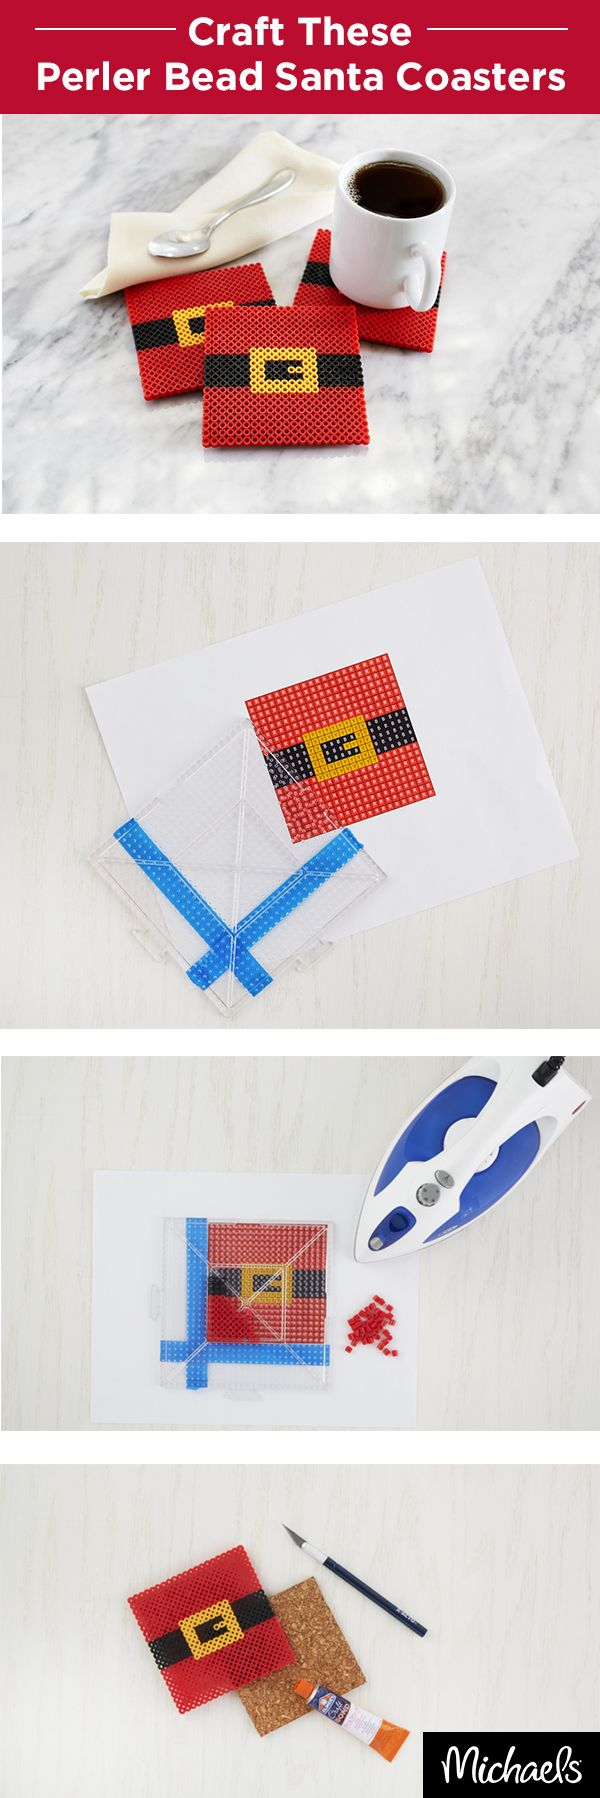 Prepare for a visit from St. Nick with these iconic Santa belt coasters. Download a template from Michaels.com to create your design. Iron your Perler® beads to fuse them together and then add a cork backing to turn them into coasters. Get all of the supplies you need for this project at your local Michaels store.